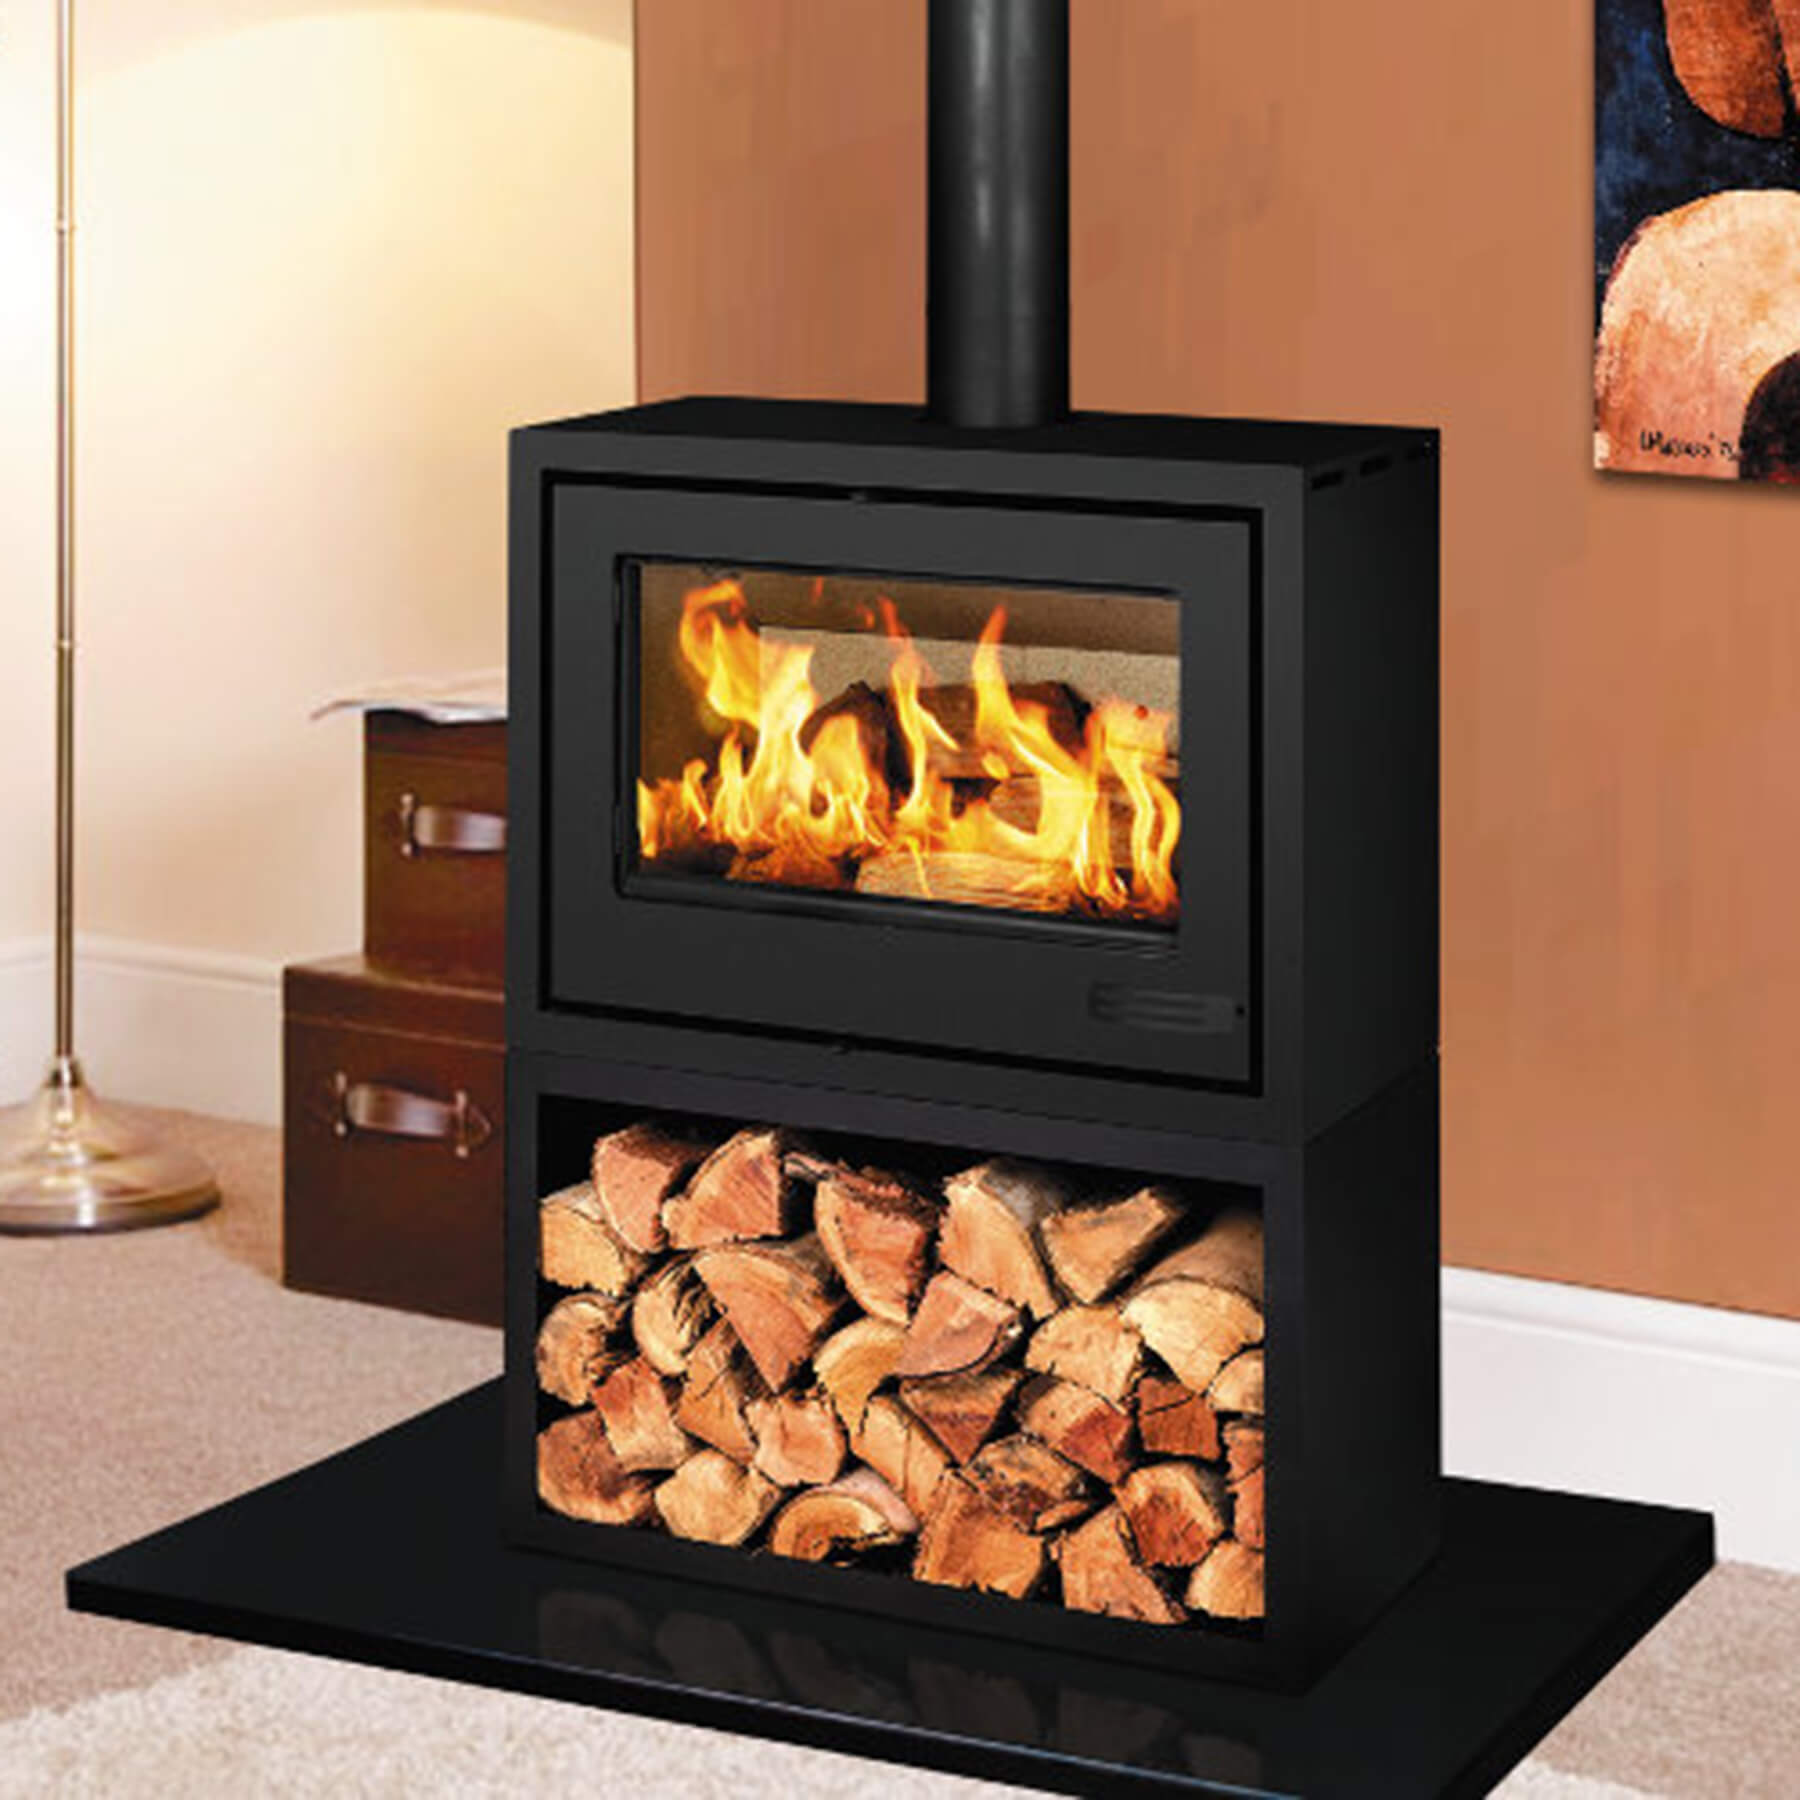 Combustion-Fireplaces-Freestanding-13kw-Convection-Unit-Wood-Storage-Box-Environment